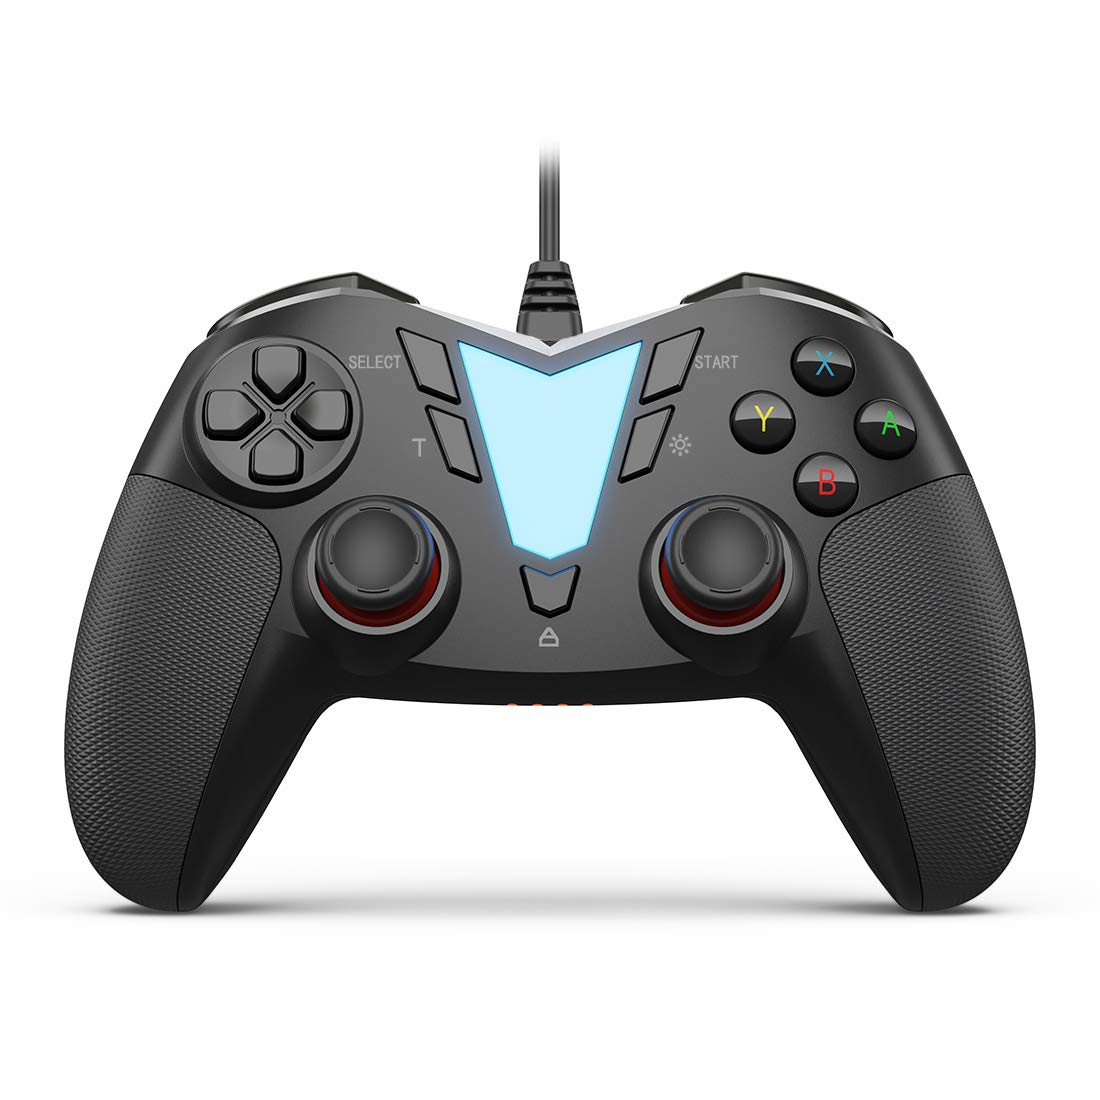 Black PS3 - Android IFYOO ONE Pro Wired USB Gaming Gamepad Joystick Compatible with Computer//Laptop Windows 10//8//7//XP PC Steam Game Controller Phone//Tablet//TV//Box